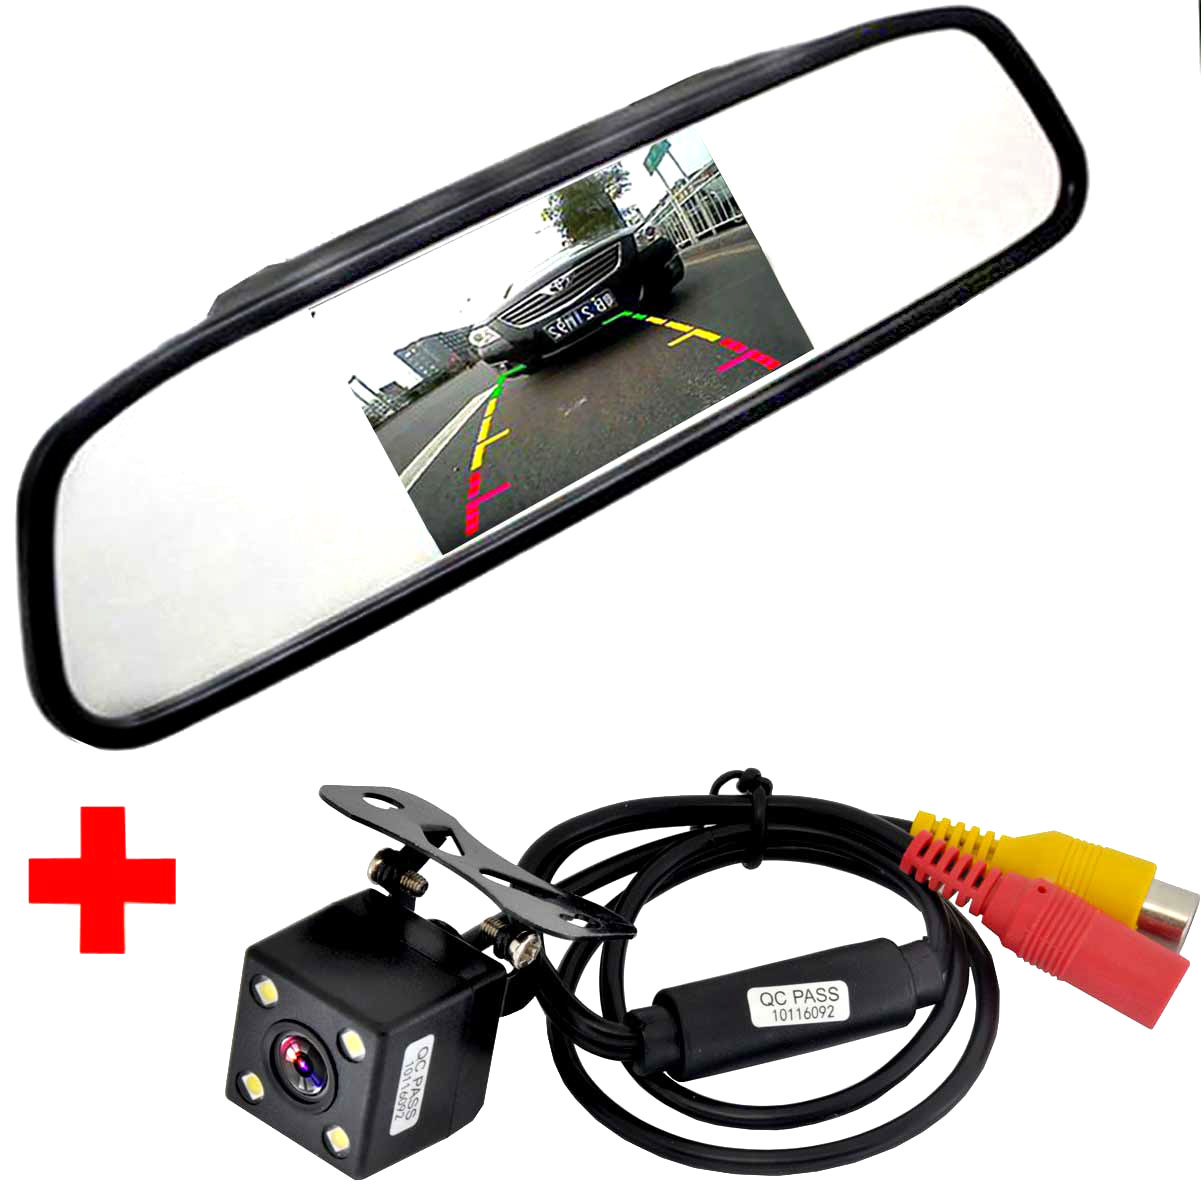 Car HD Video Auto Parking Monitor, LED Night Vision Reversing CCD Car Rear View Camera With 4.3 inch Car Rearview Mirror Monitor 11